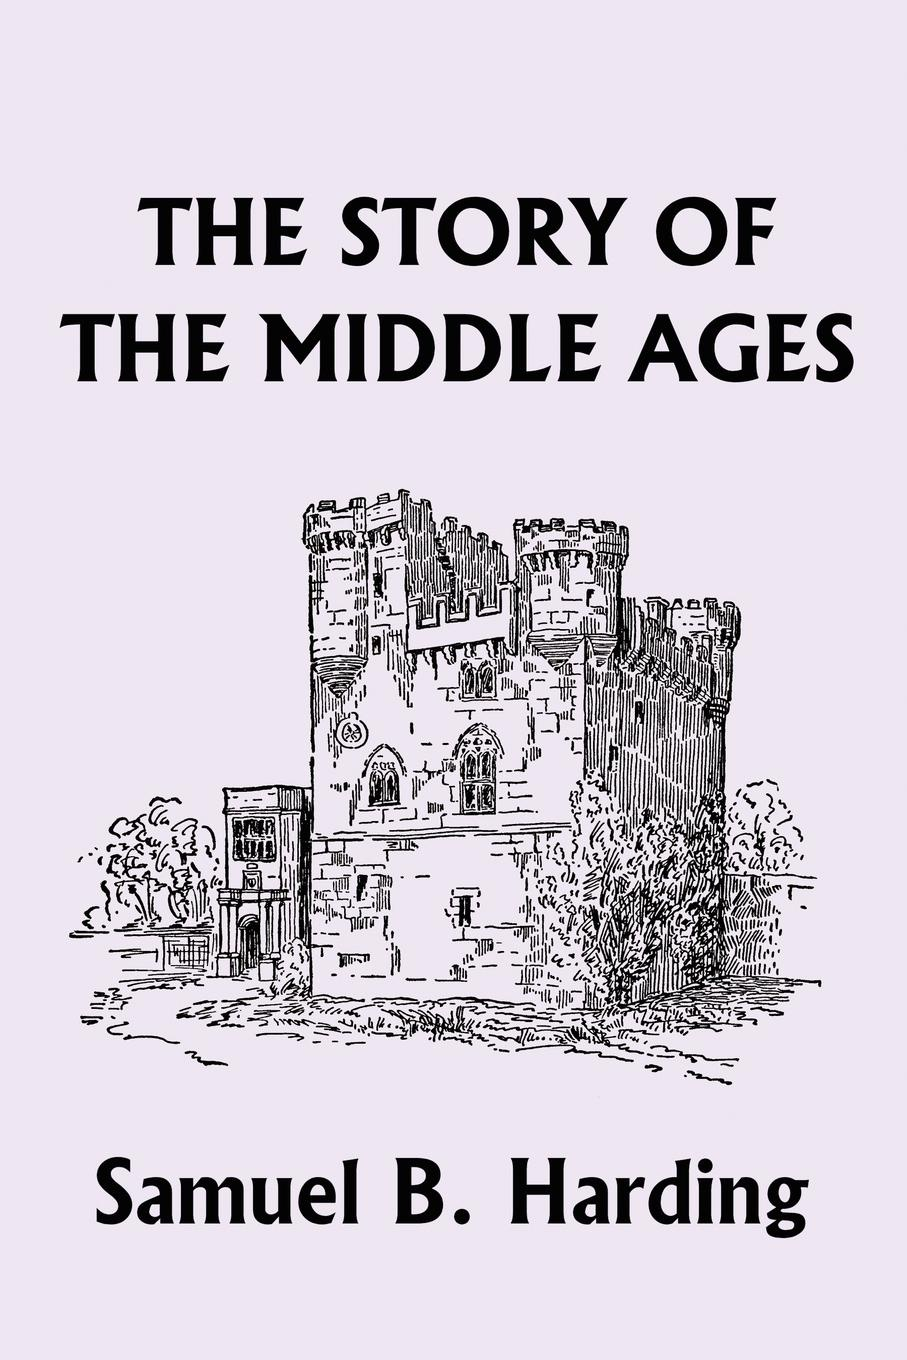 Samuel B. Harding The Story of the Middle Ages dominion of god – christendom and apocalypse in the middle ages